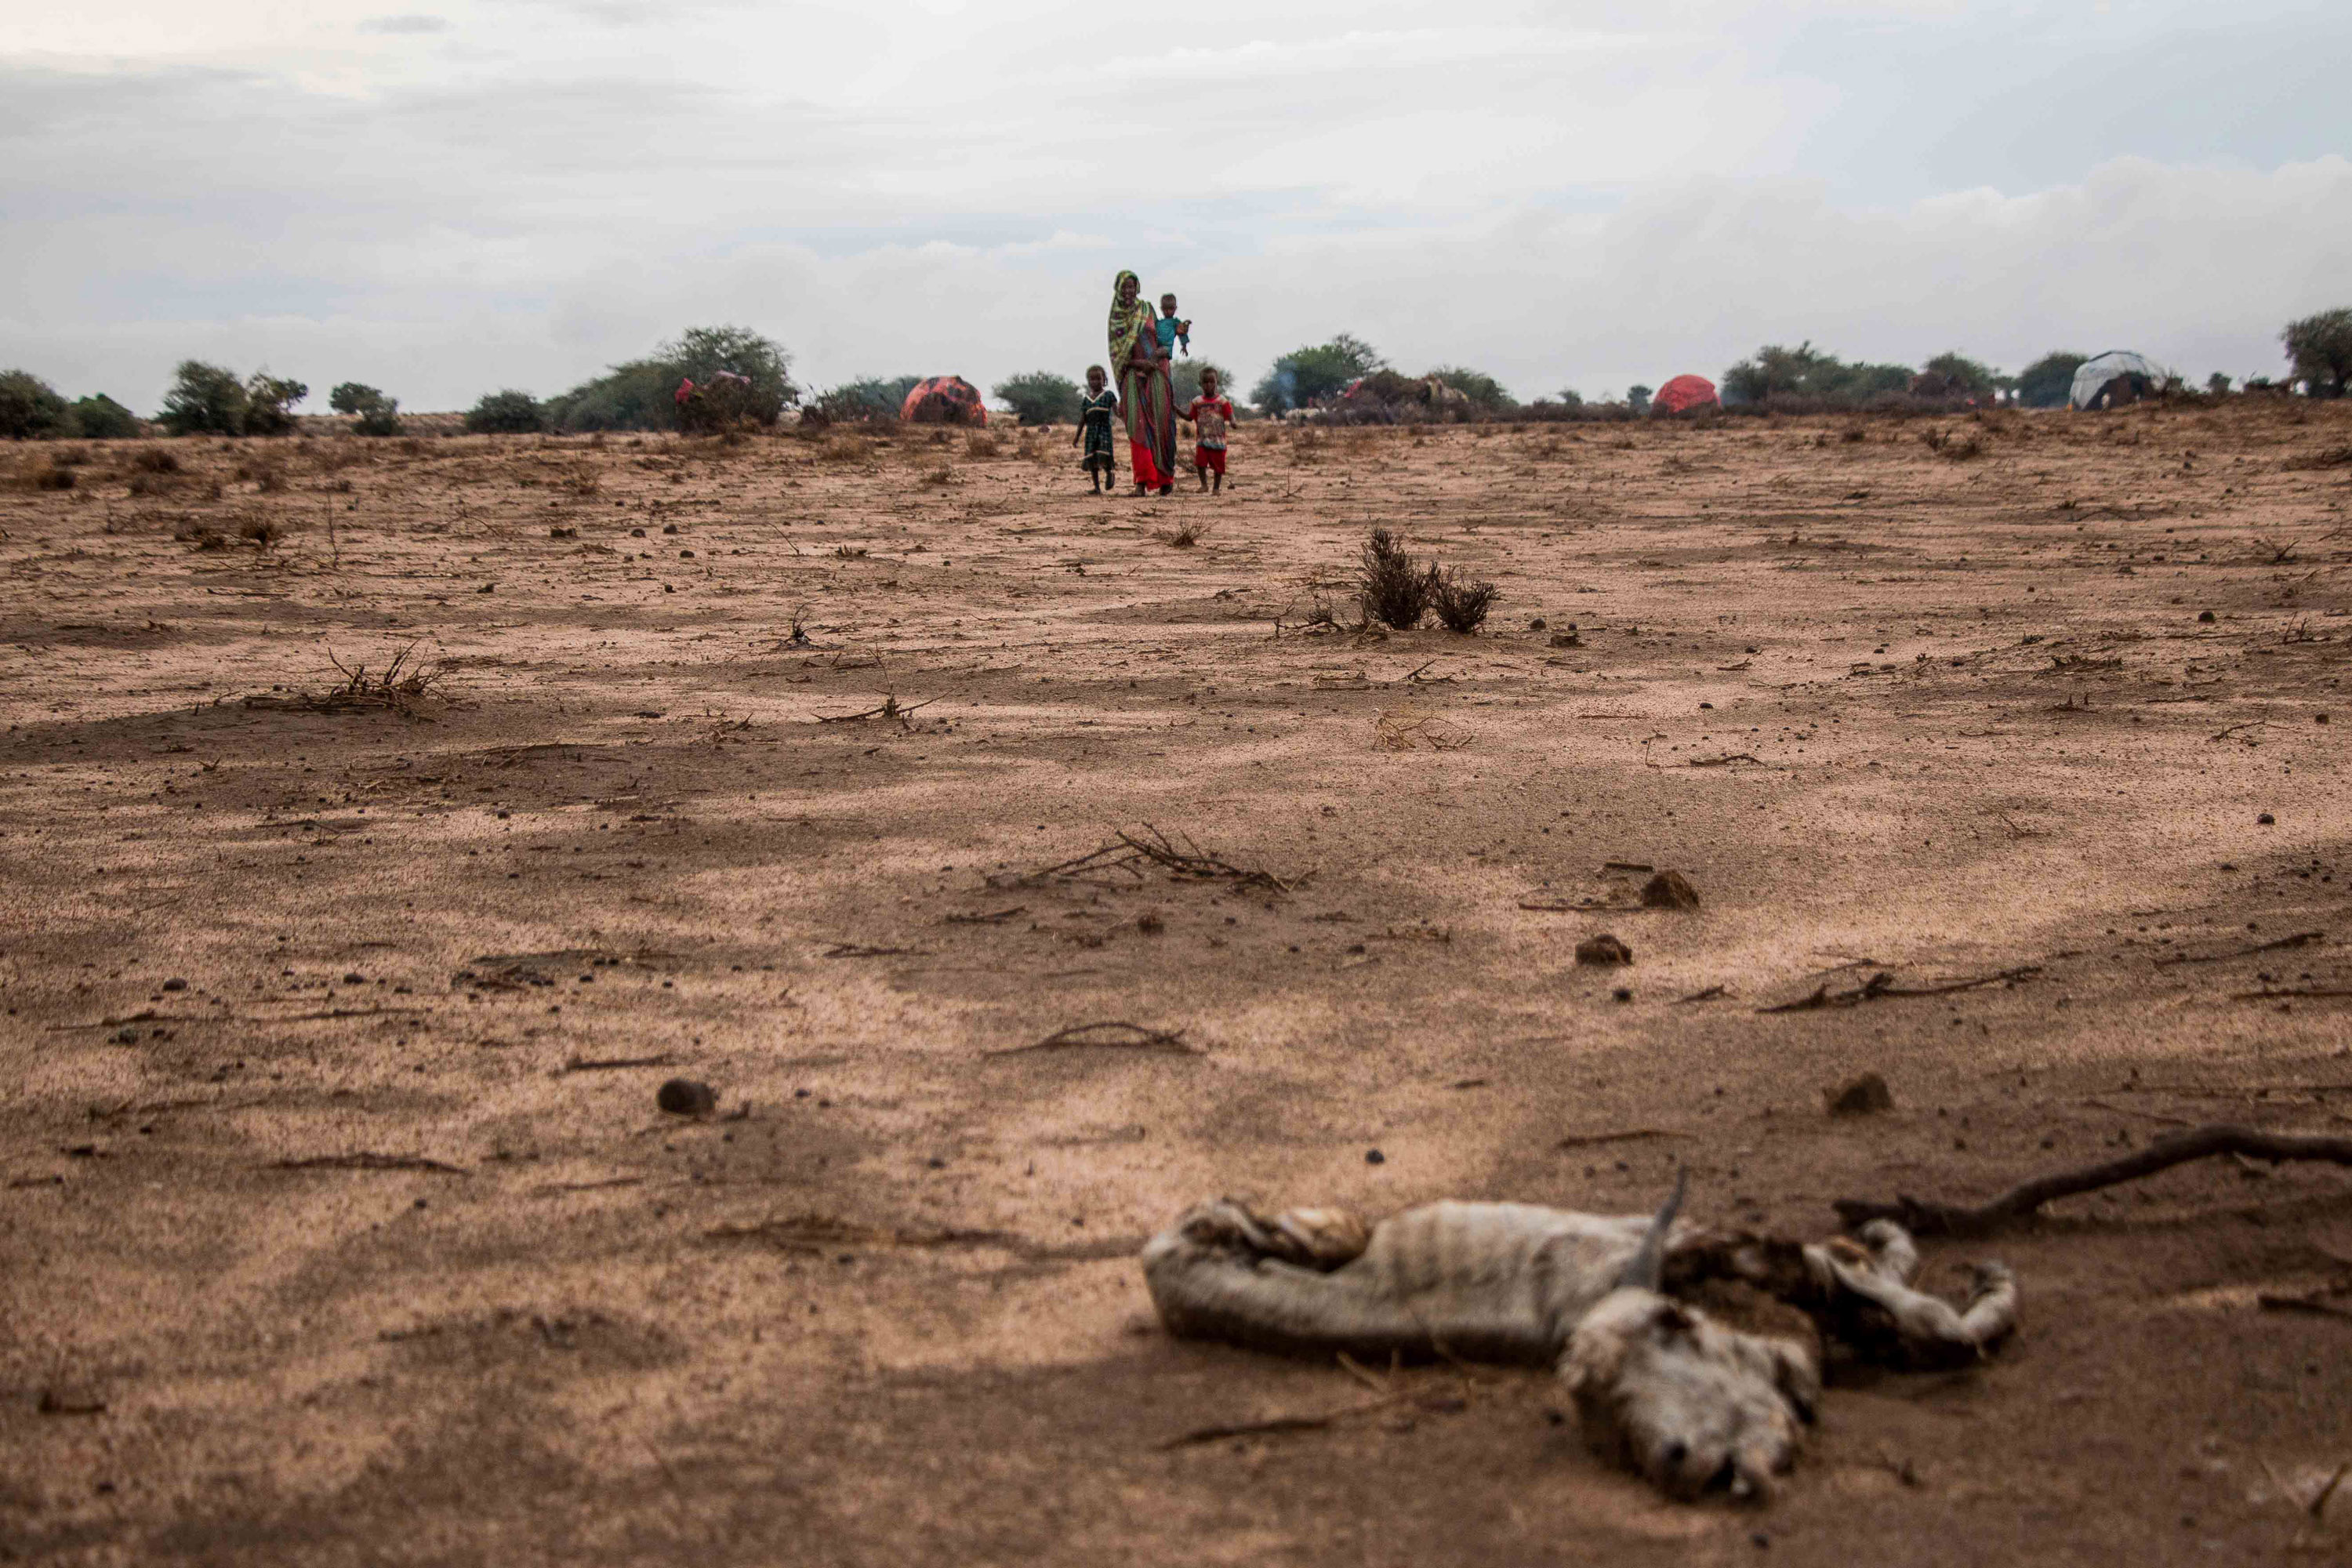 A herder family living in a bush camp in Somaliland's drought-devastated Awdal region. The camp and others like it across Awdal are scattered with the carcasses of starved livestock. [Ashley Hamer/Al Jazeera]